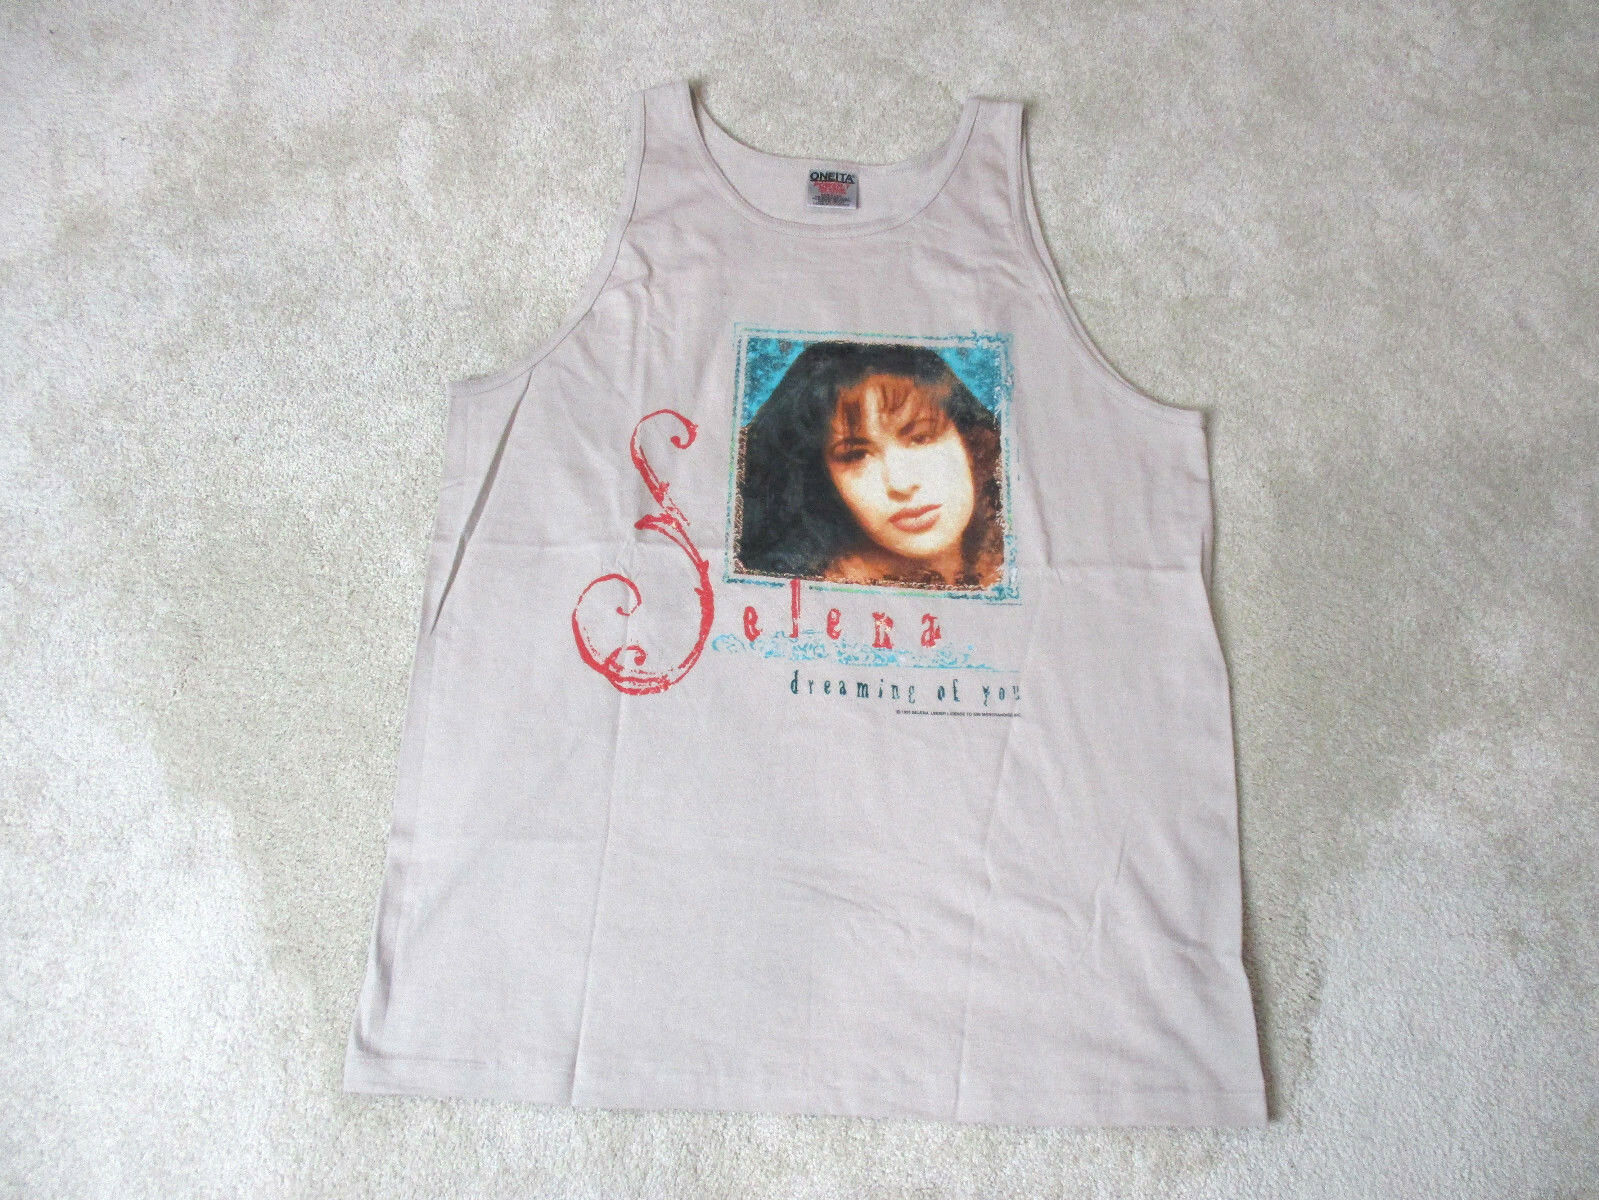 VINTAGE Selena Quintanilla Dreaming Of You Concert Shirt Adult Large 1995 90s